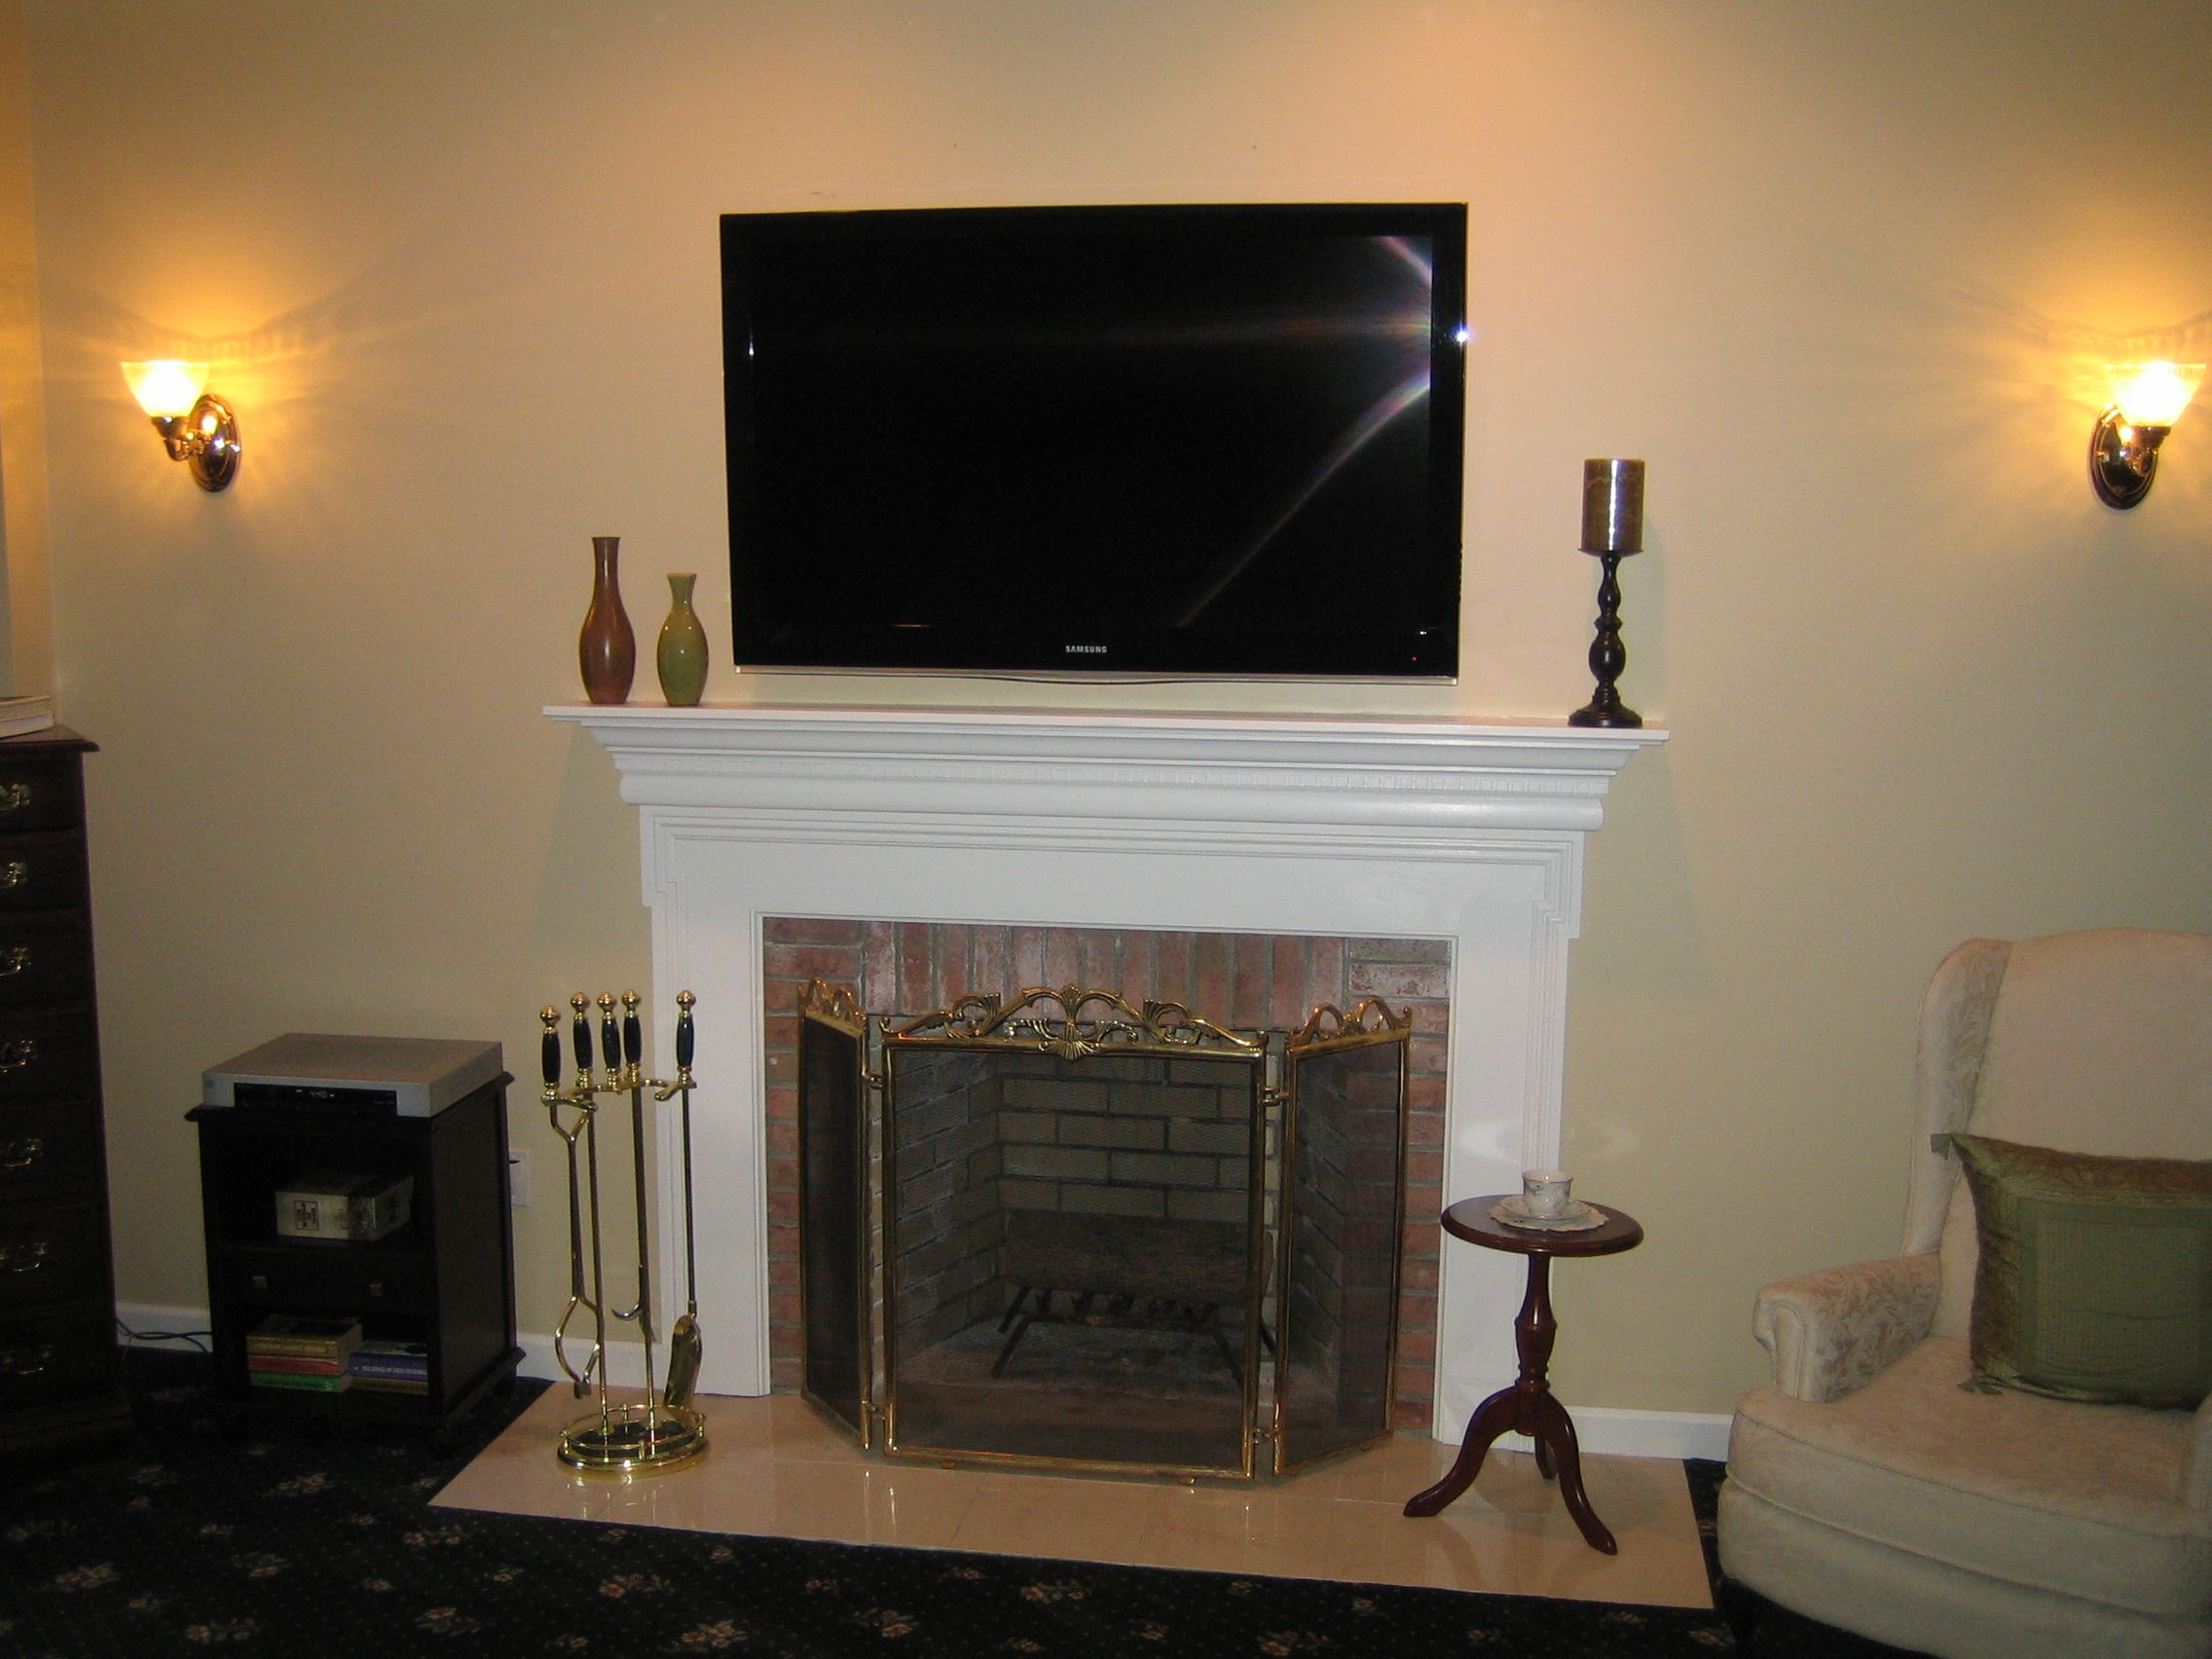 Tv Above Fireplace Decorating Ideas Tv 43over 43fireplace 43ideas Clinton Ct Mount Tv Above